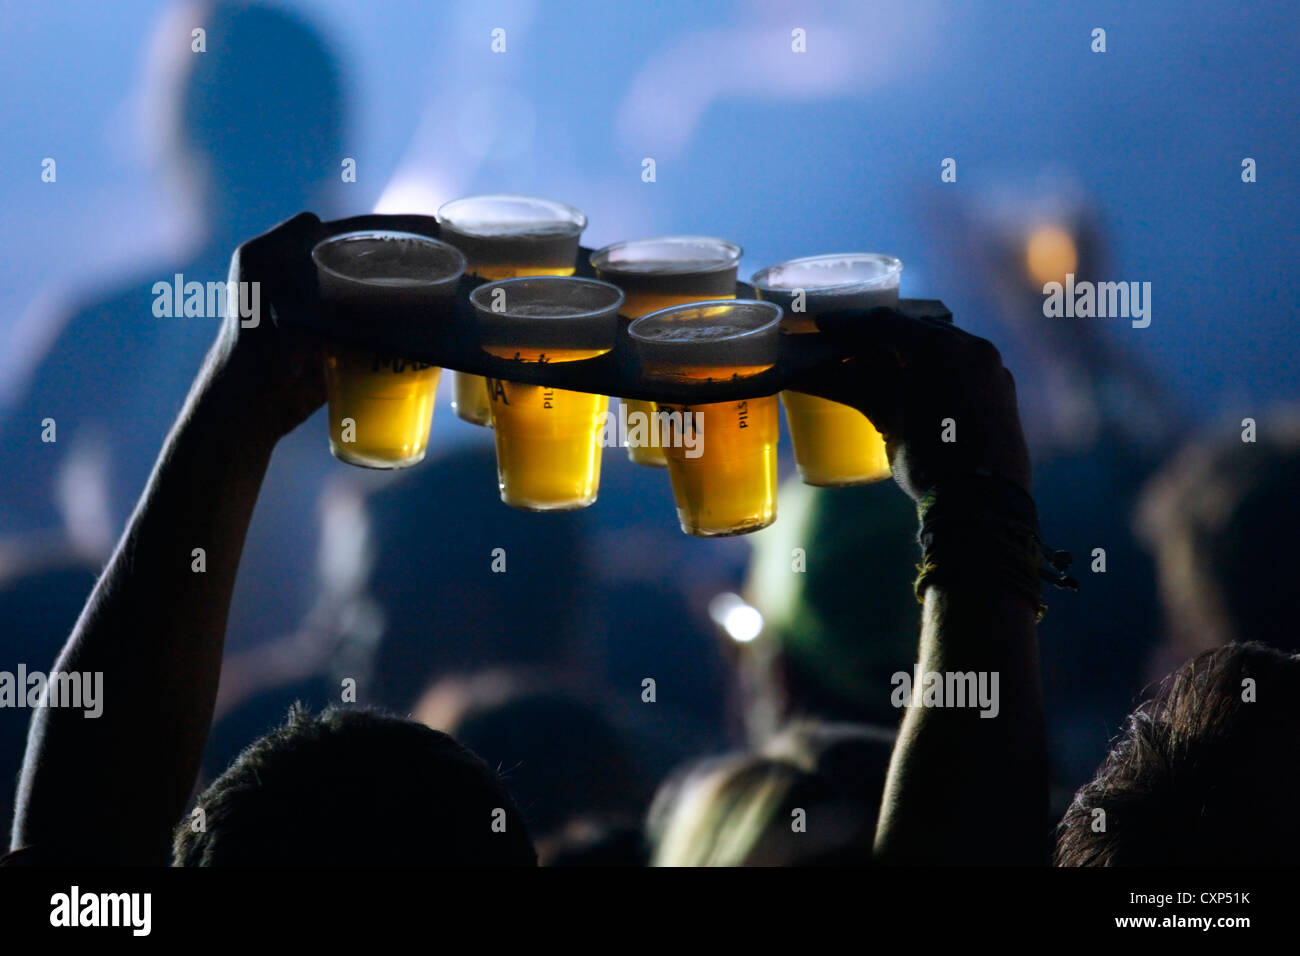 Ambiance during live rock concert and man bringing pints of beer in plastic cups to friends among spectators / crowd, - Stock Image